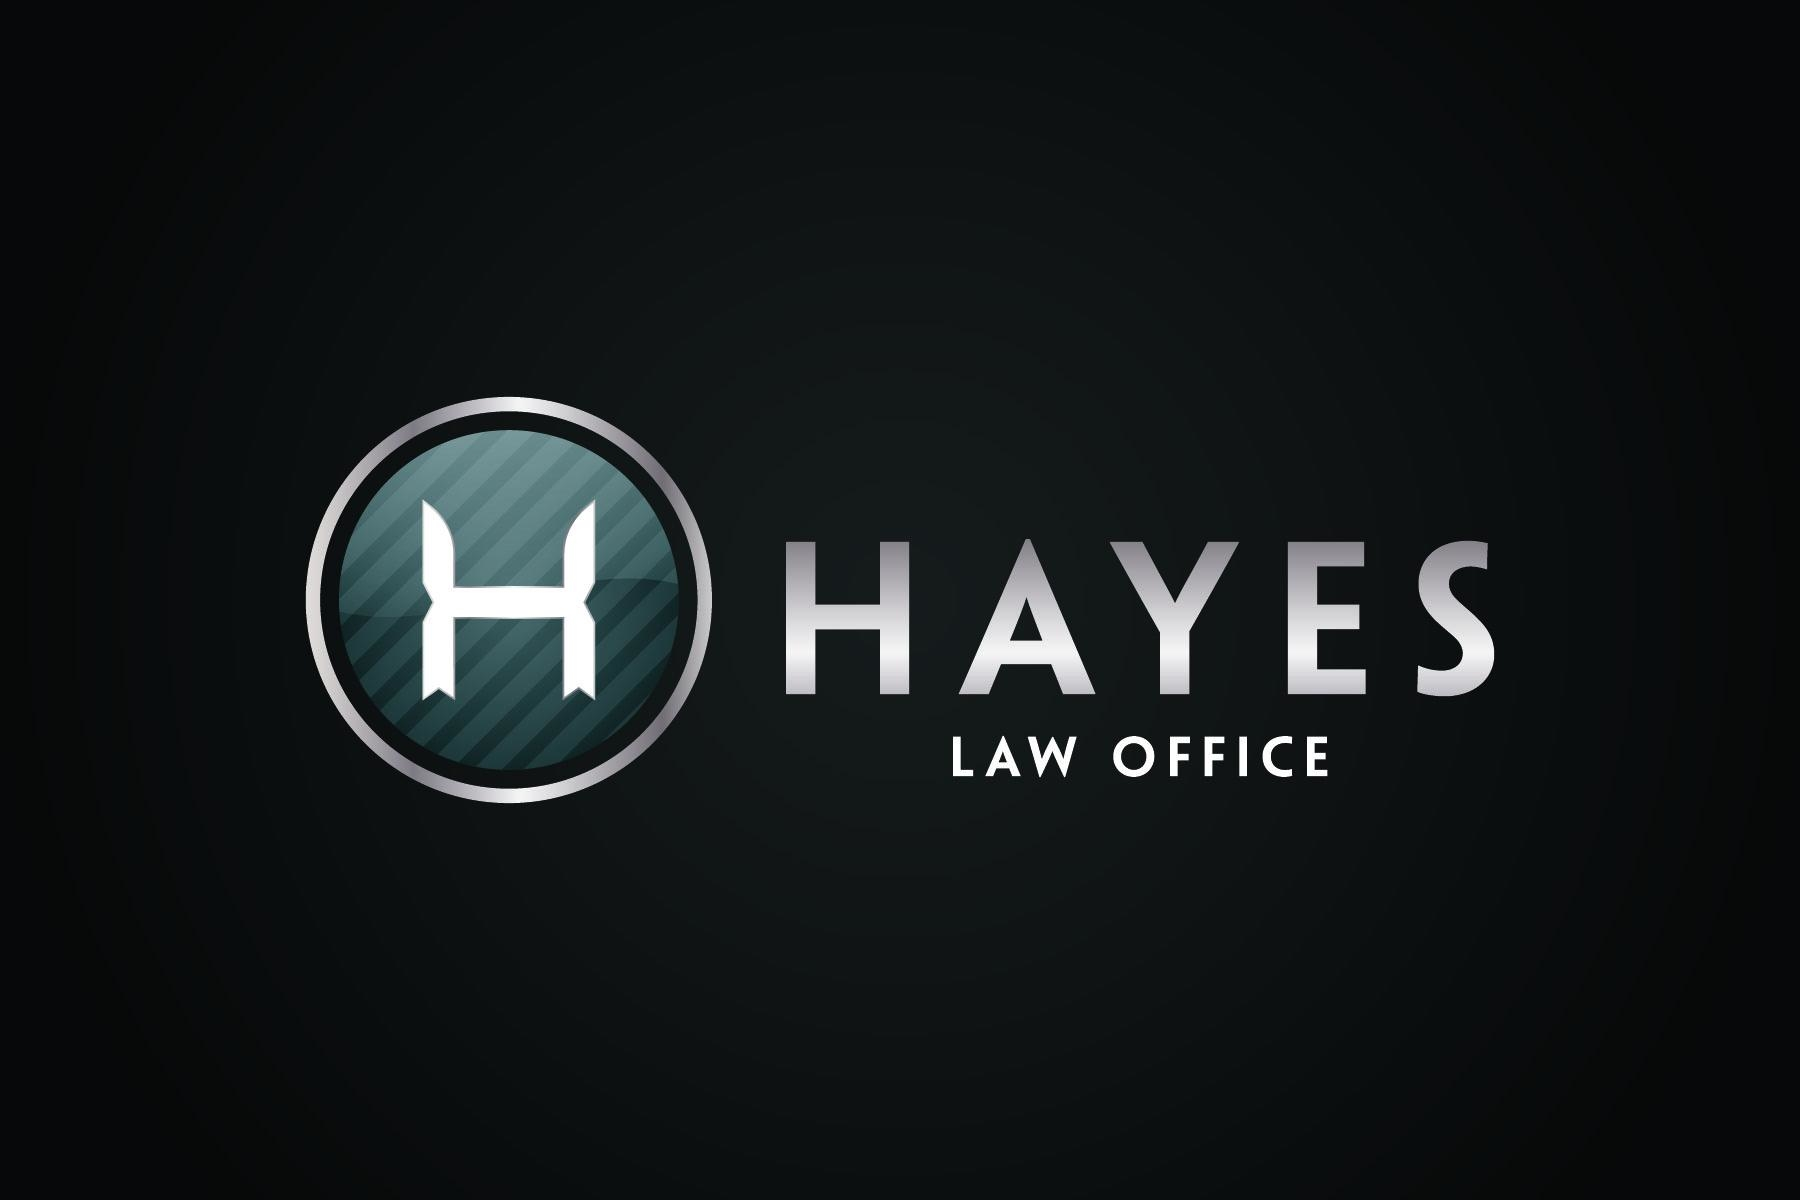 Hayes Law Office